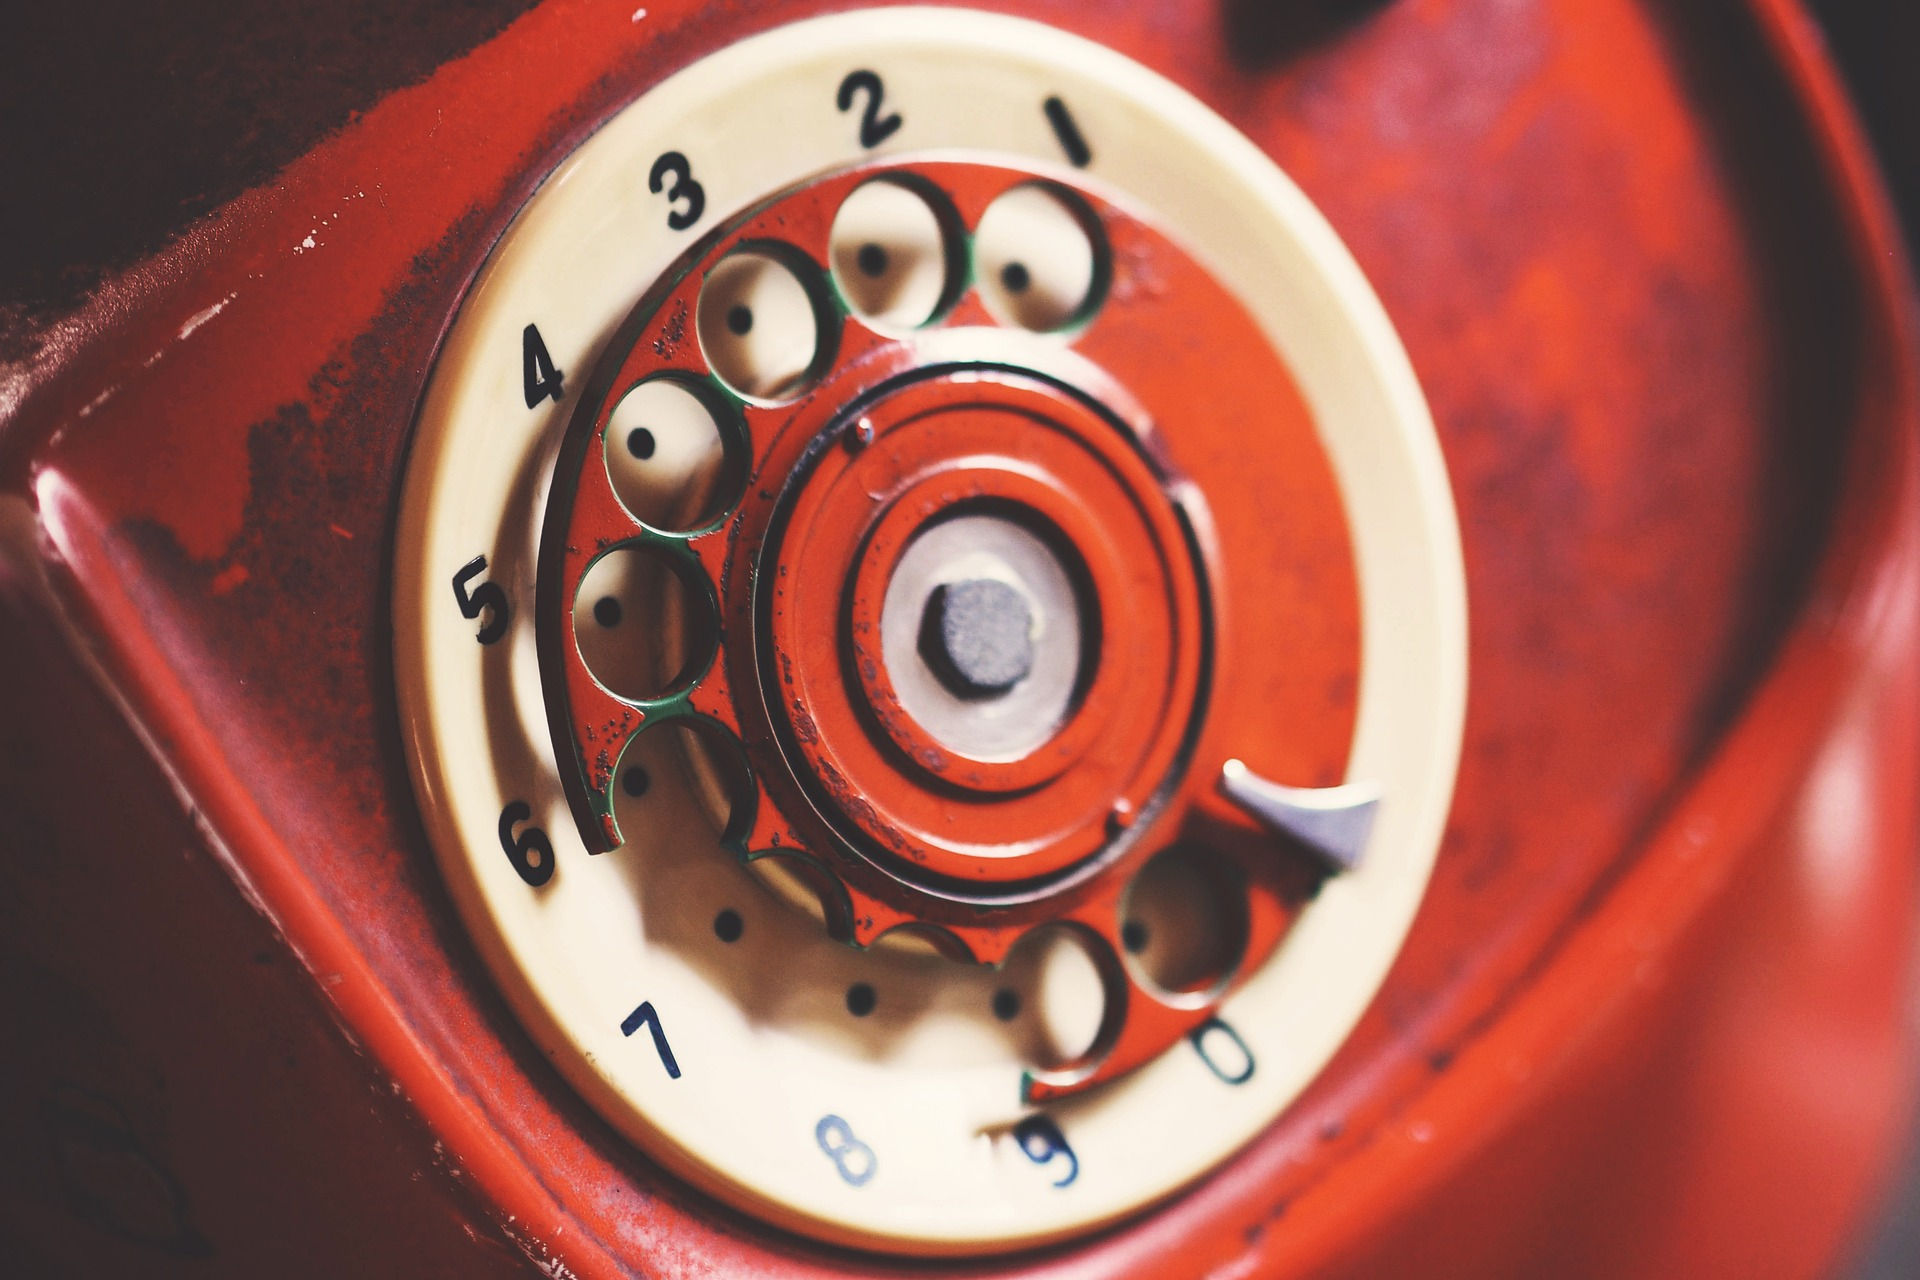 Blood red telephone. Photo credit: igorovsyannykov on Pixabay.